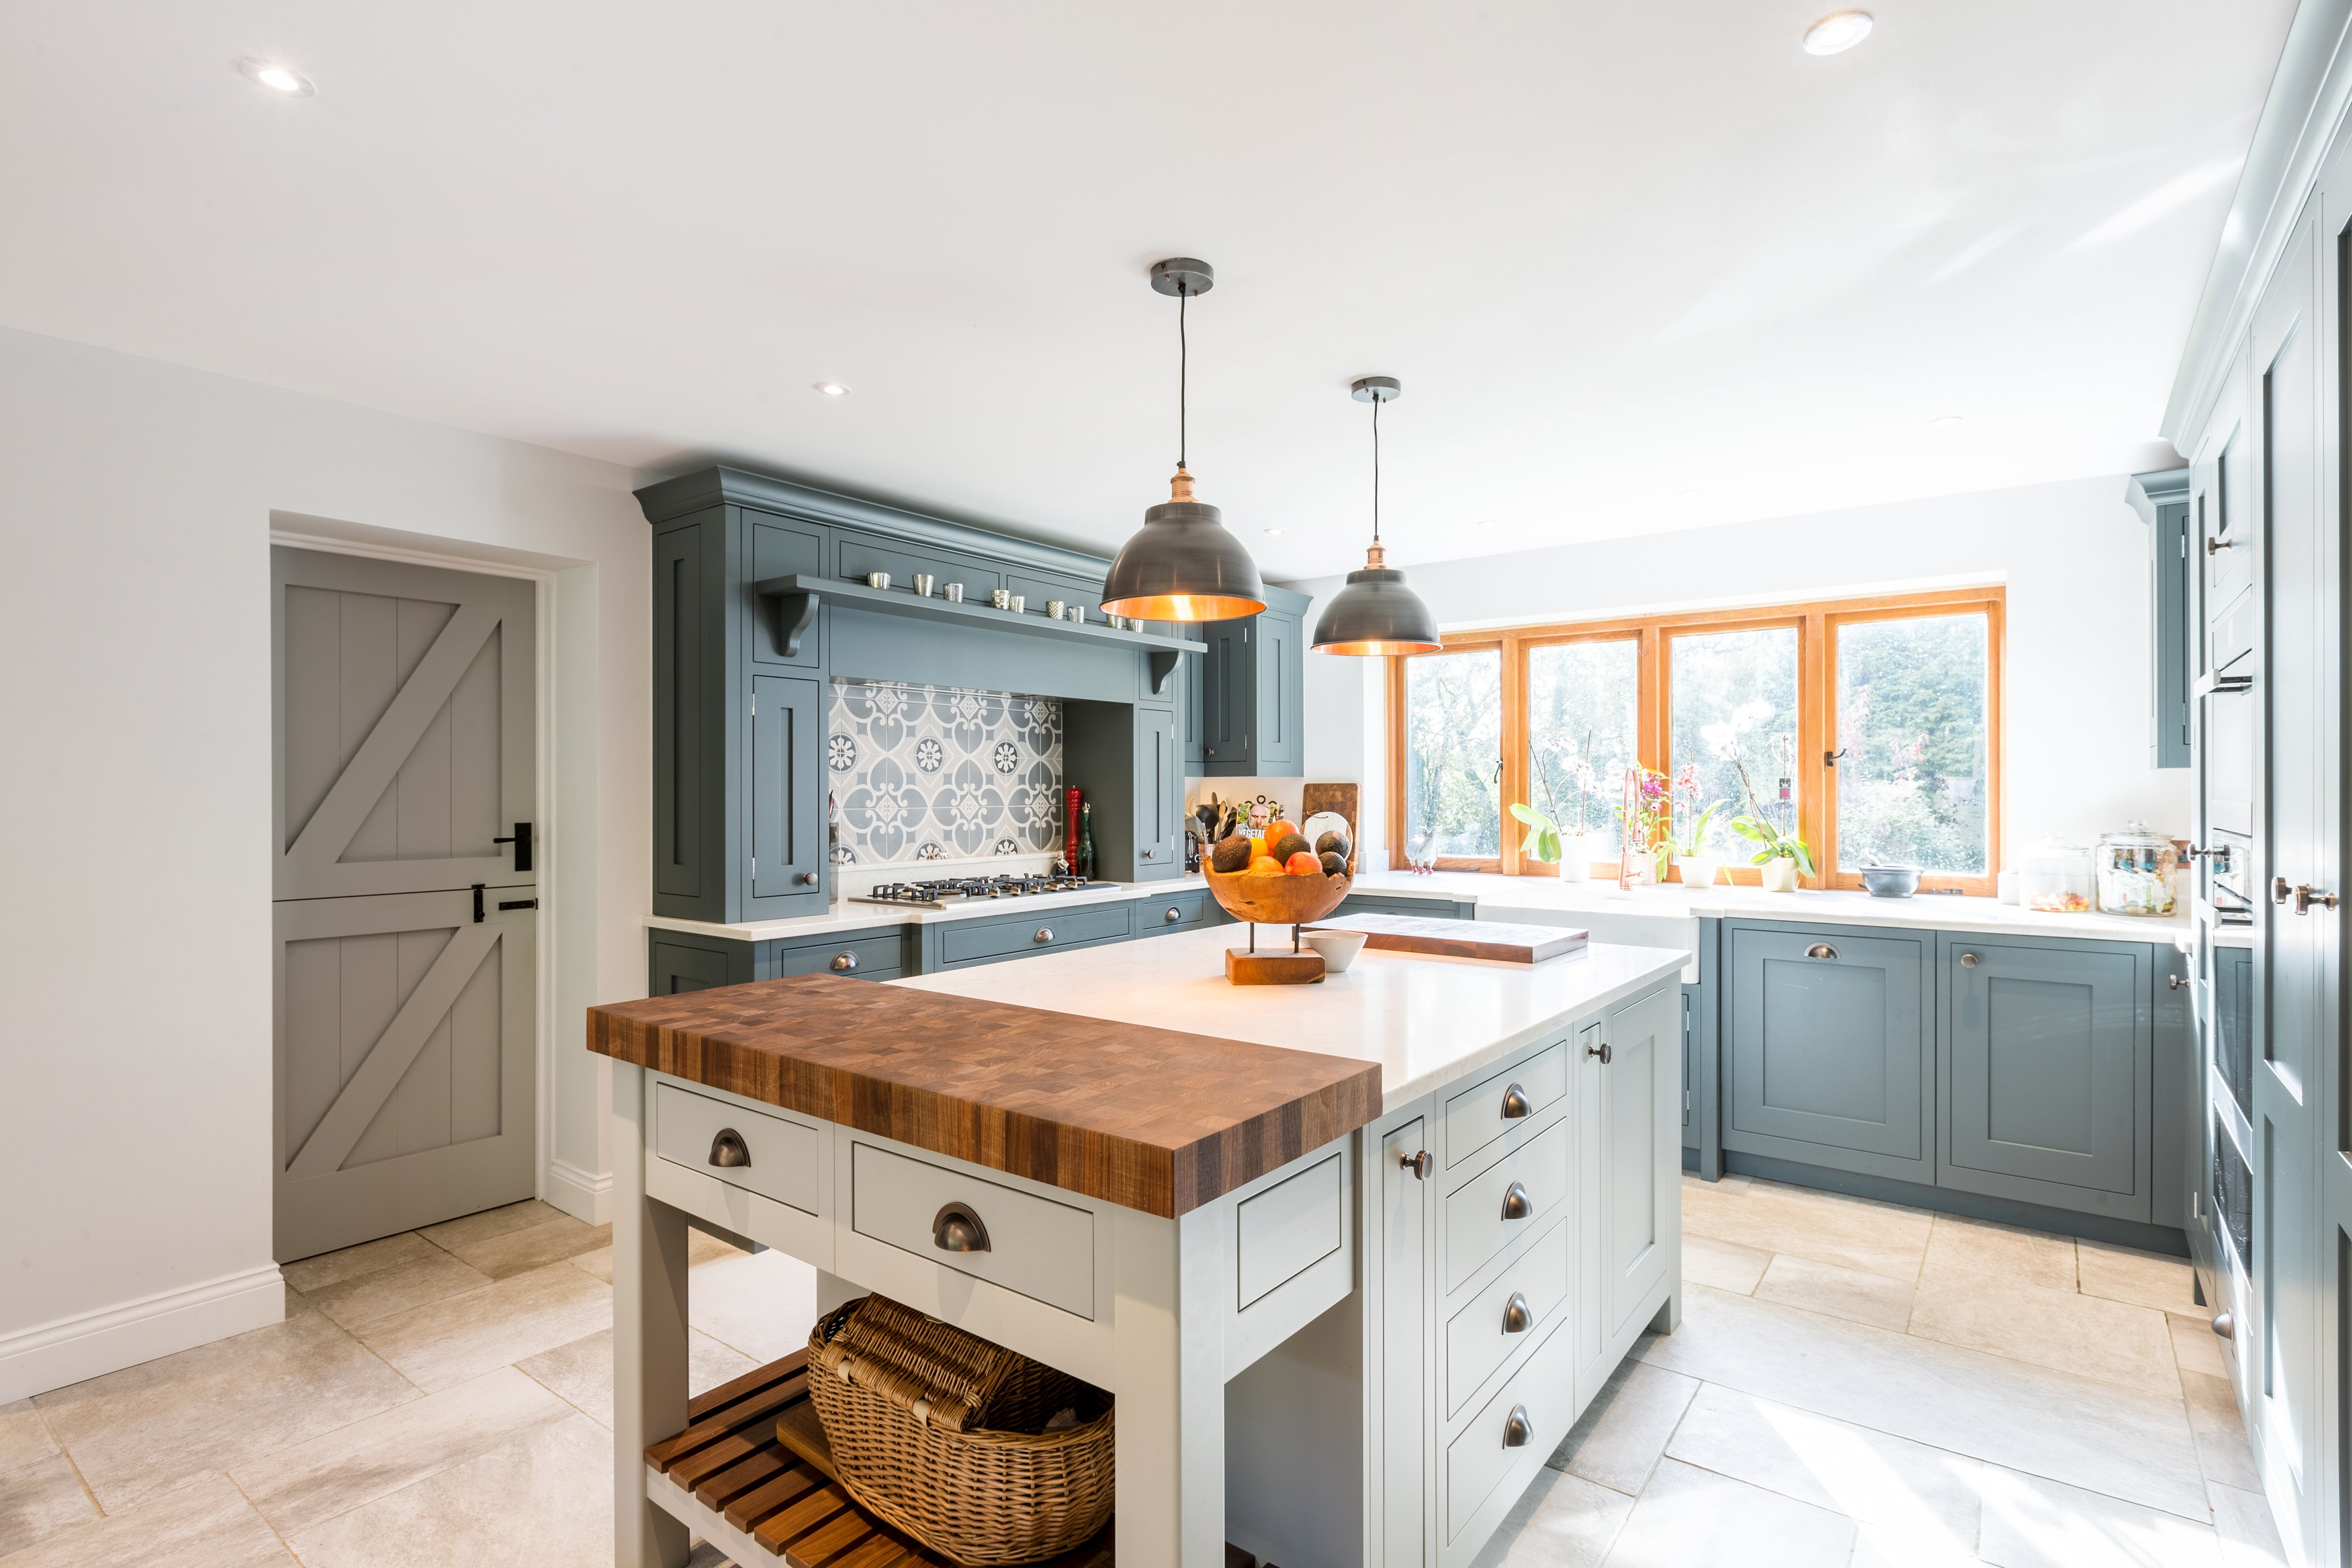 Grey shaker kitchen & utility